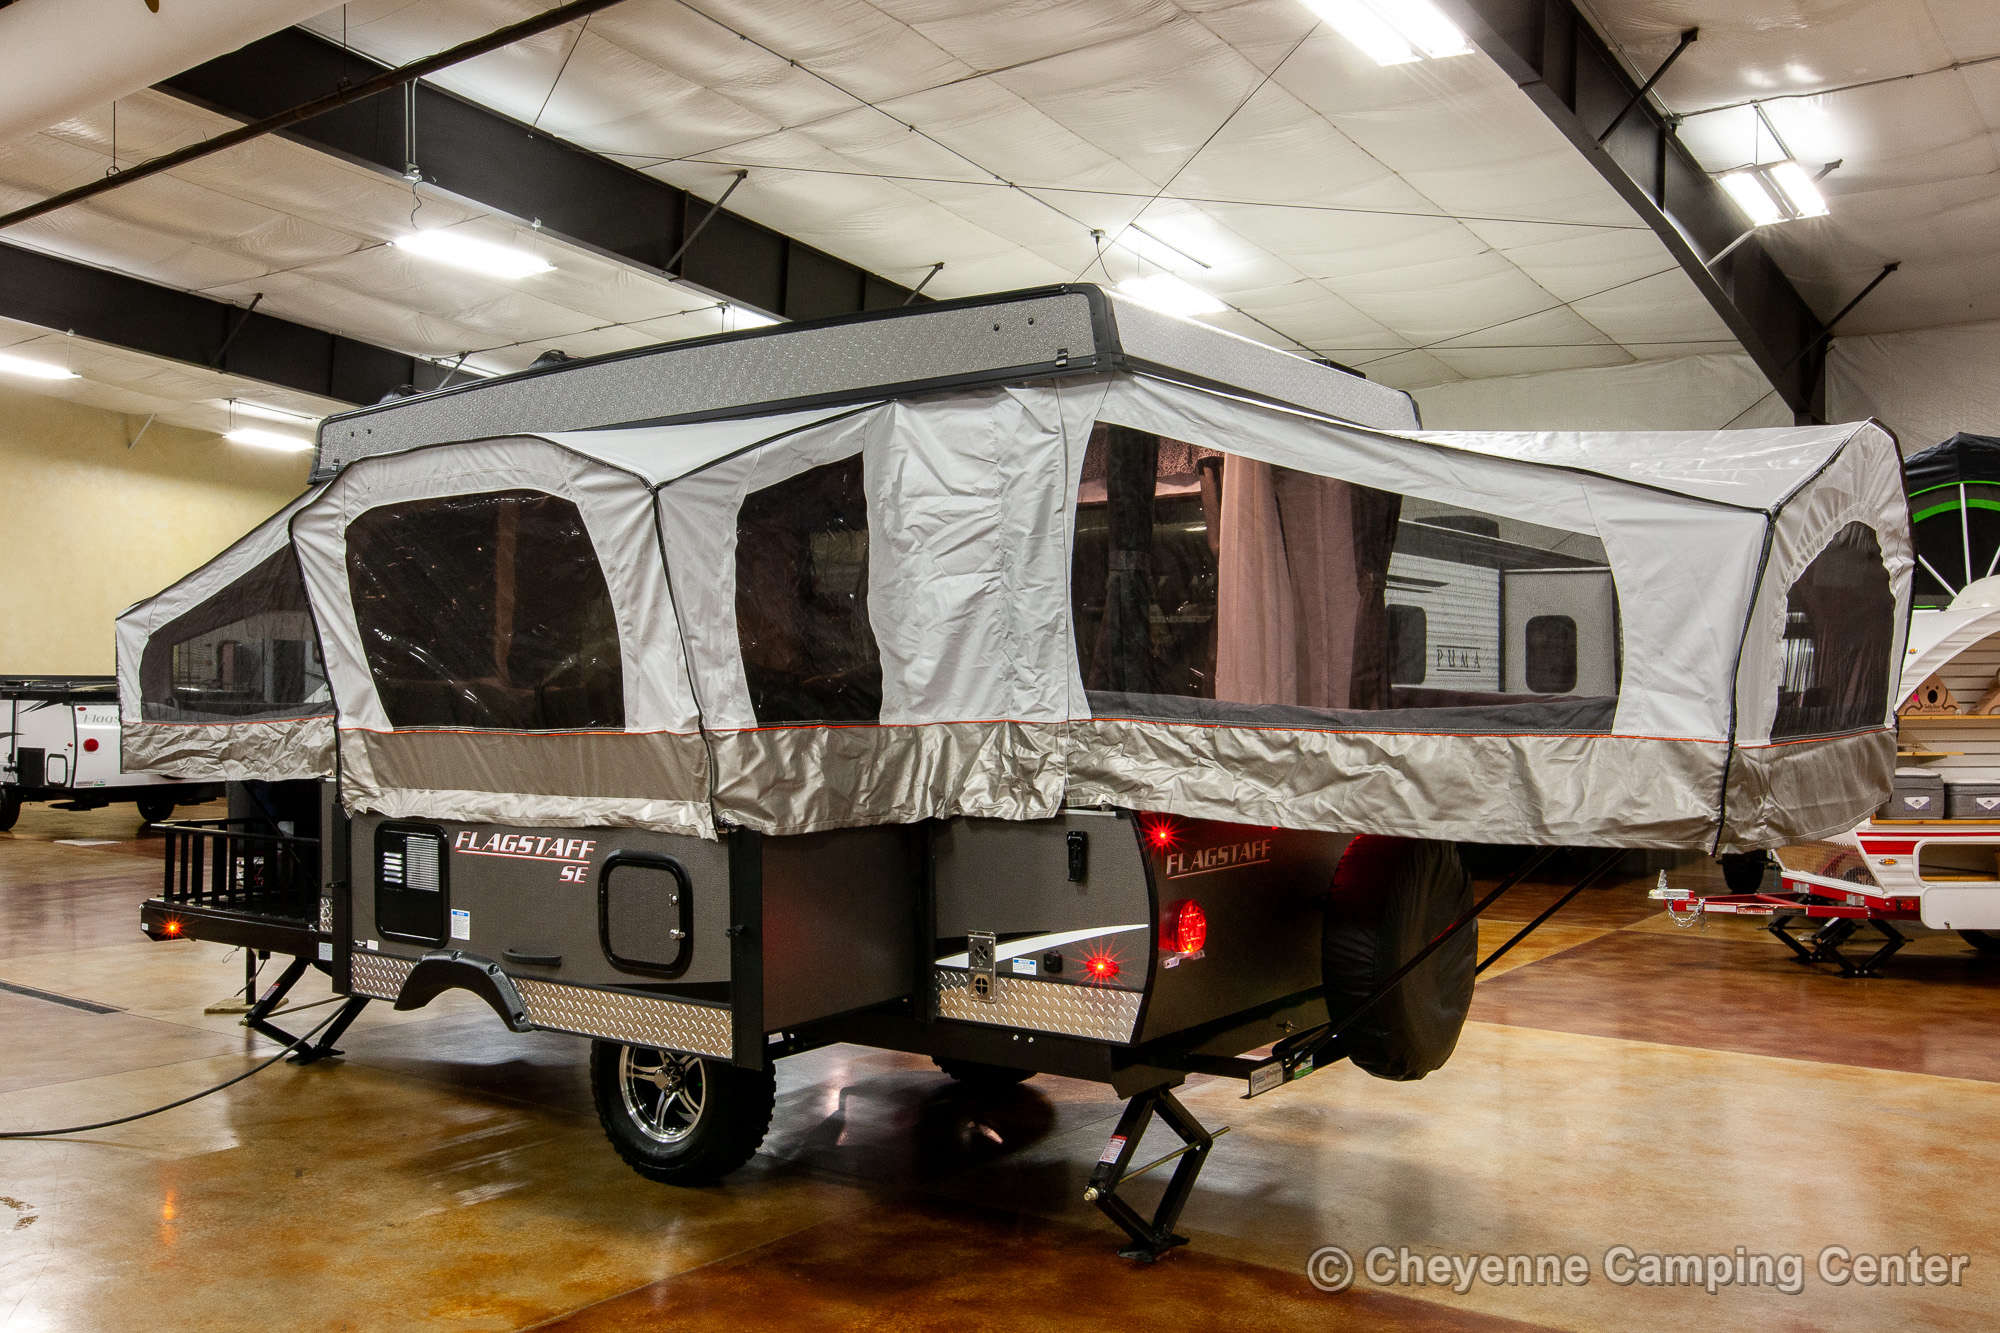 2021 Forest River Flagstaff Sports Enthusiast 23SCSE Toy Hauler Folding Camper Exterior Image